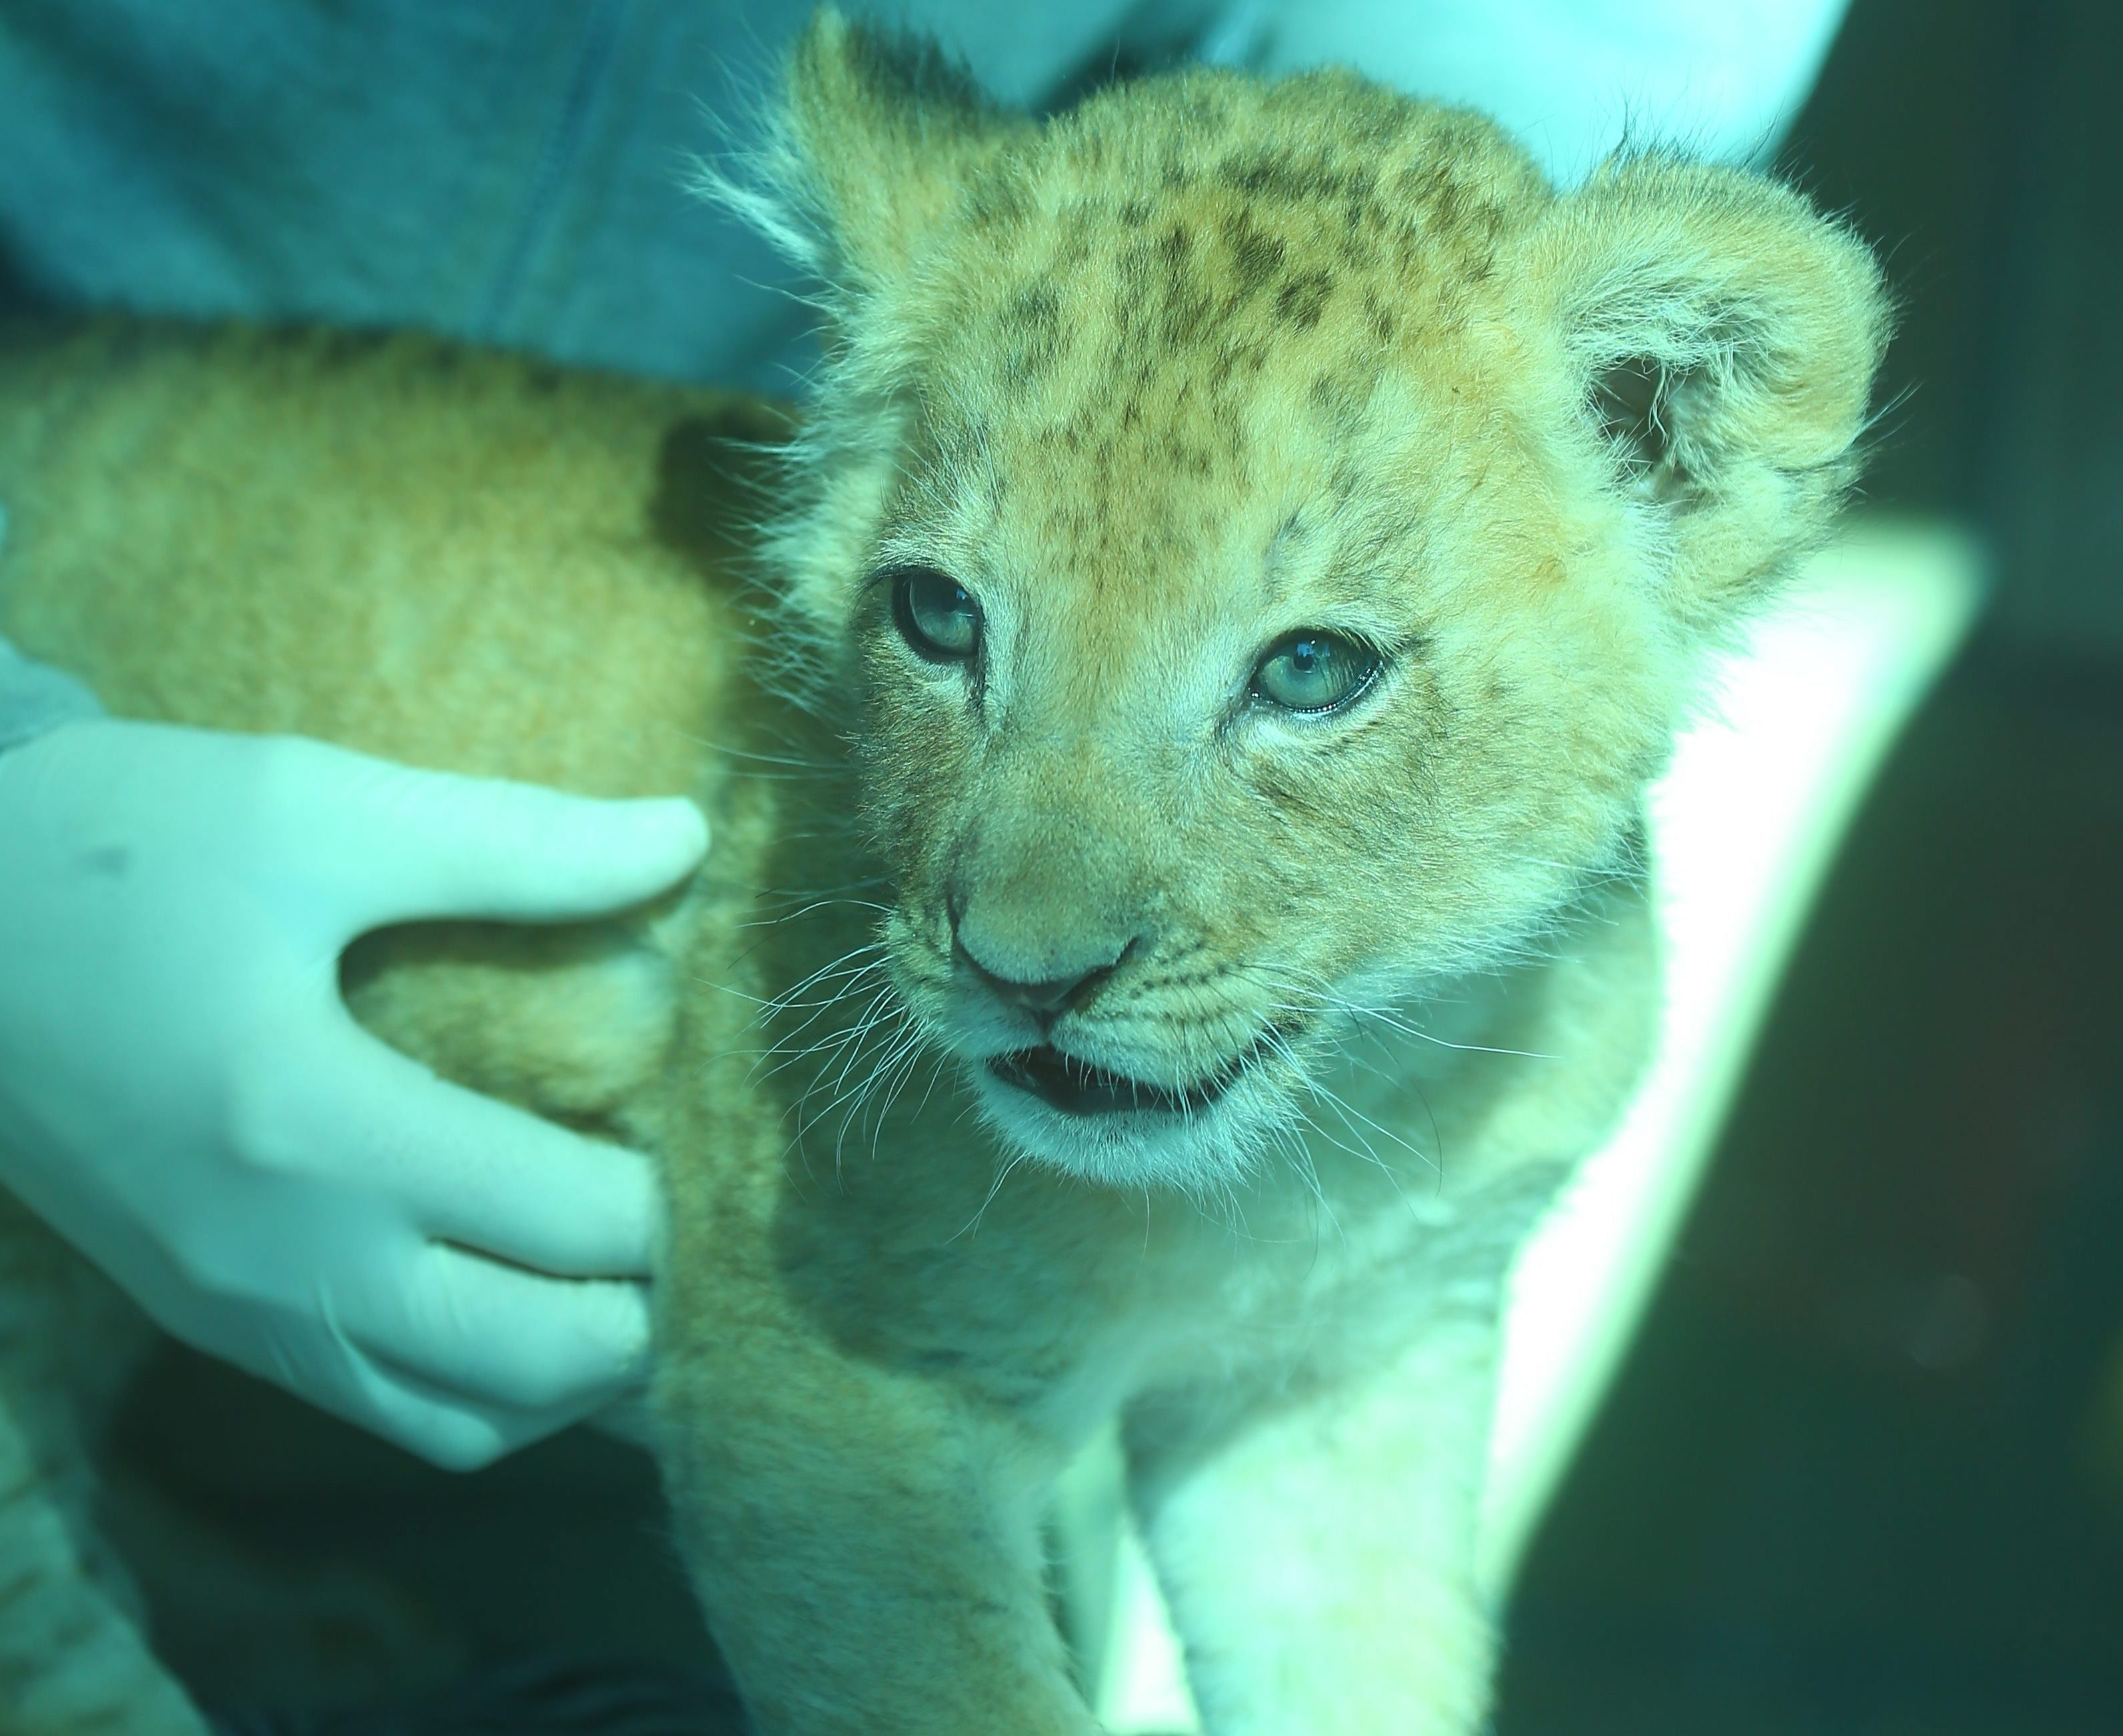 An African lion cub born on March 5 was introduced at the Buffalo Zoo on Wednesday April 27, 2016. The new lion will not be on display for several weeks so that he has time to bond with his family. (John Hickey/Buffalo News)